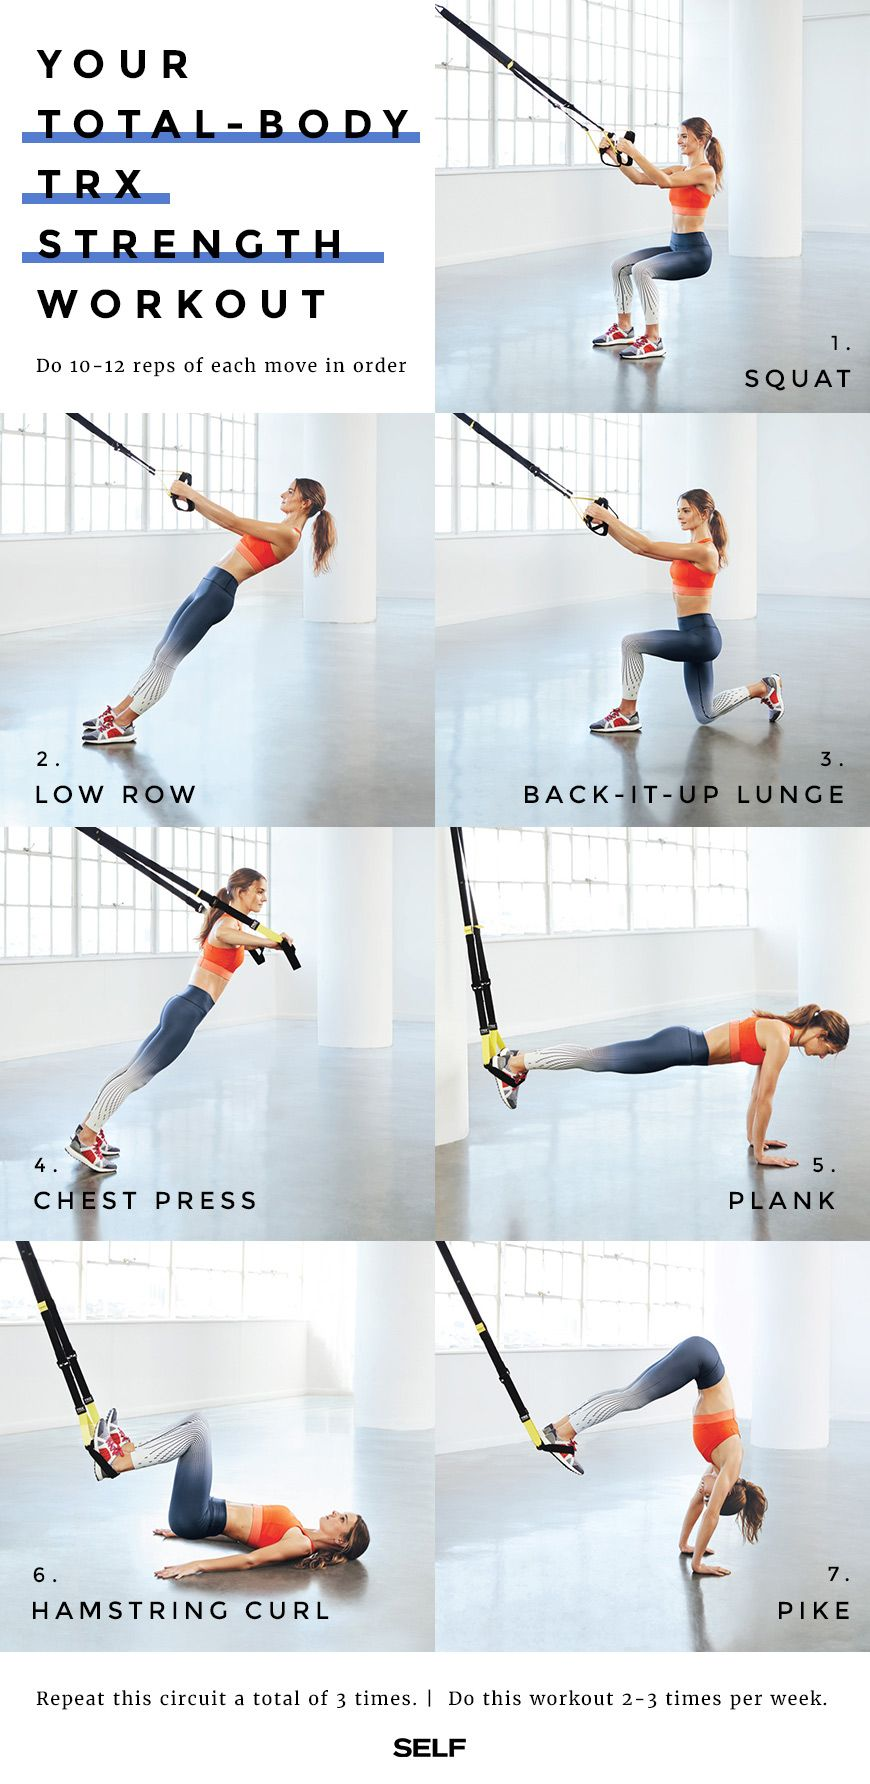 Do this routine of powerhouse basics to perfect your TRX technique while you zing every muscle.